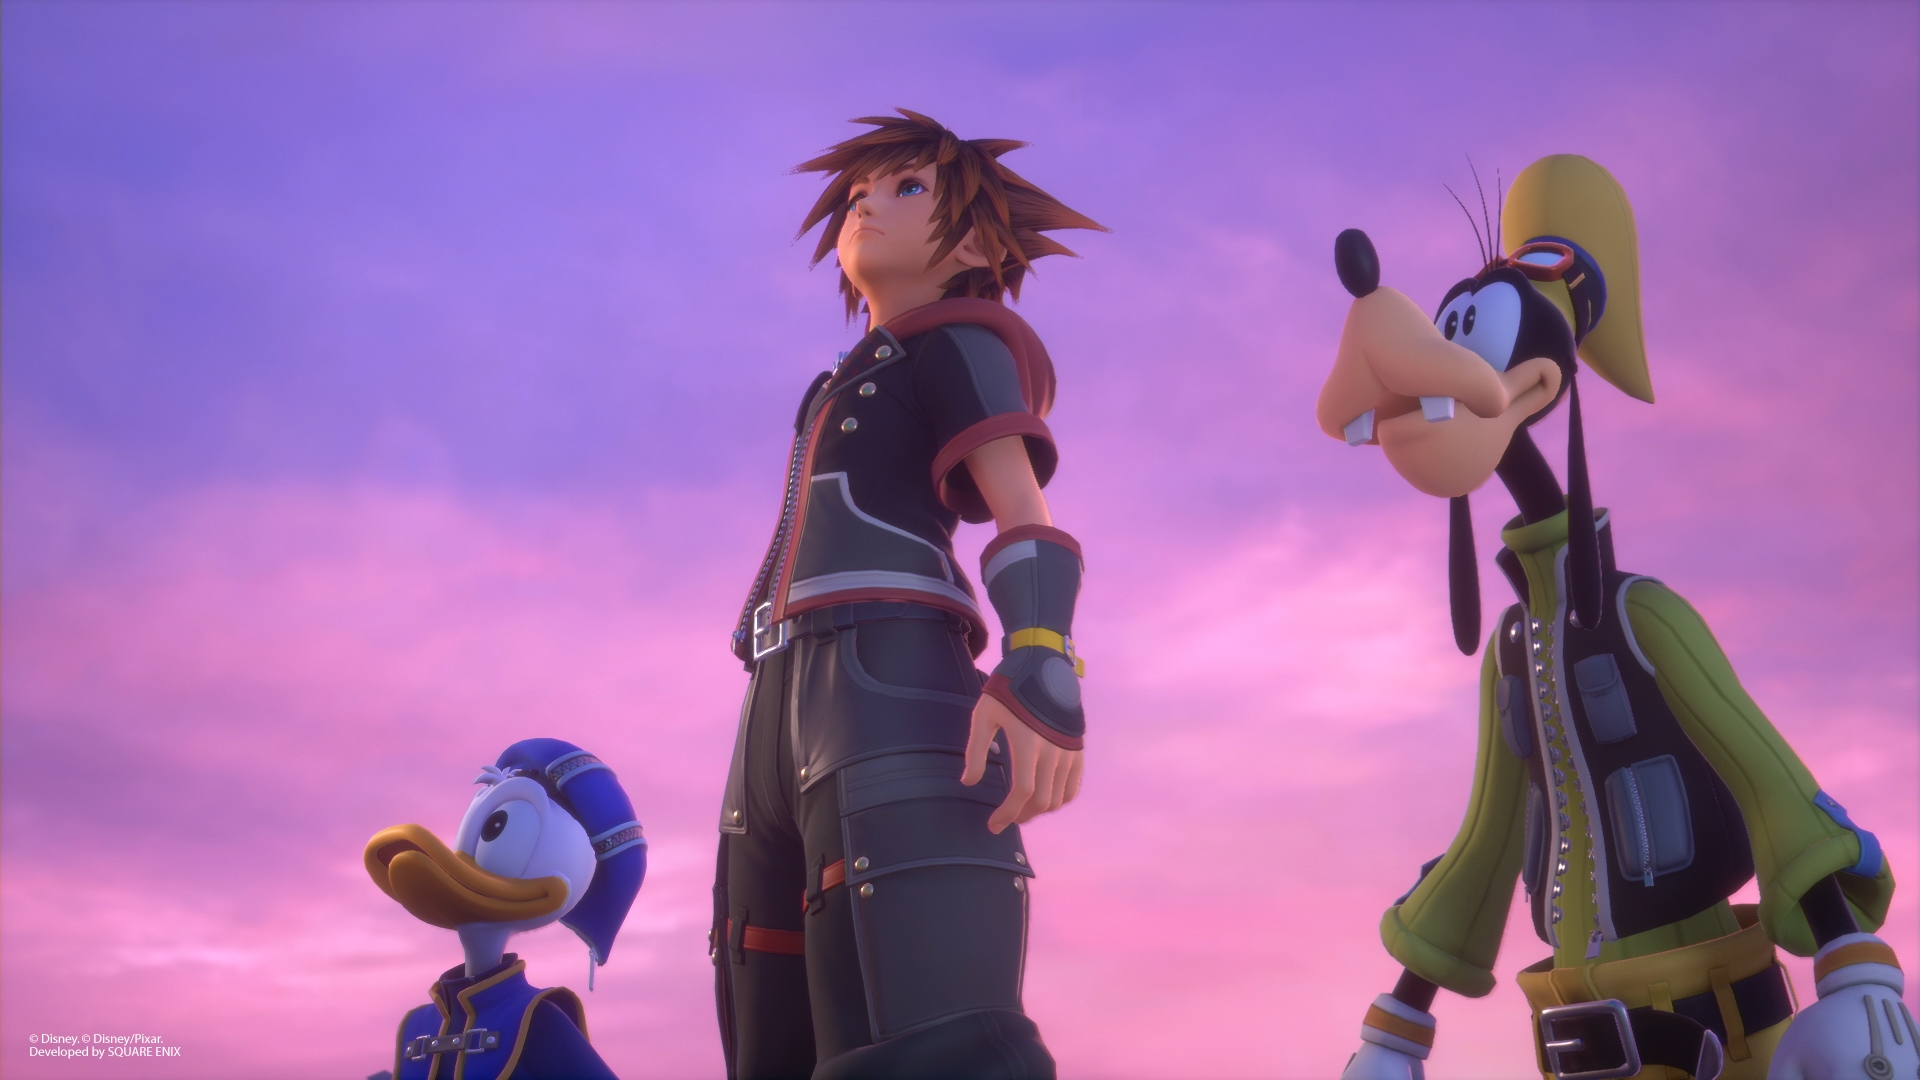 Kingdom Hearts director confirms 'at least one' spin-off before Kingdom Hearts 4